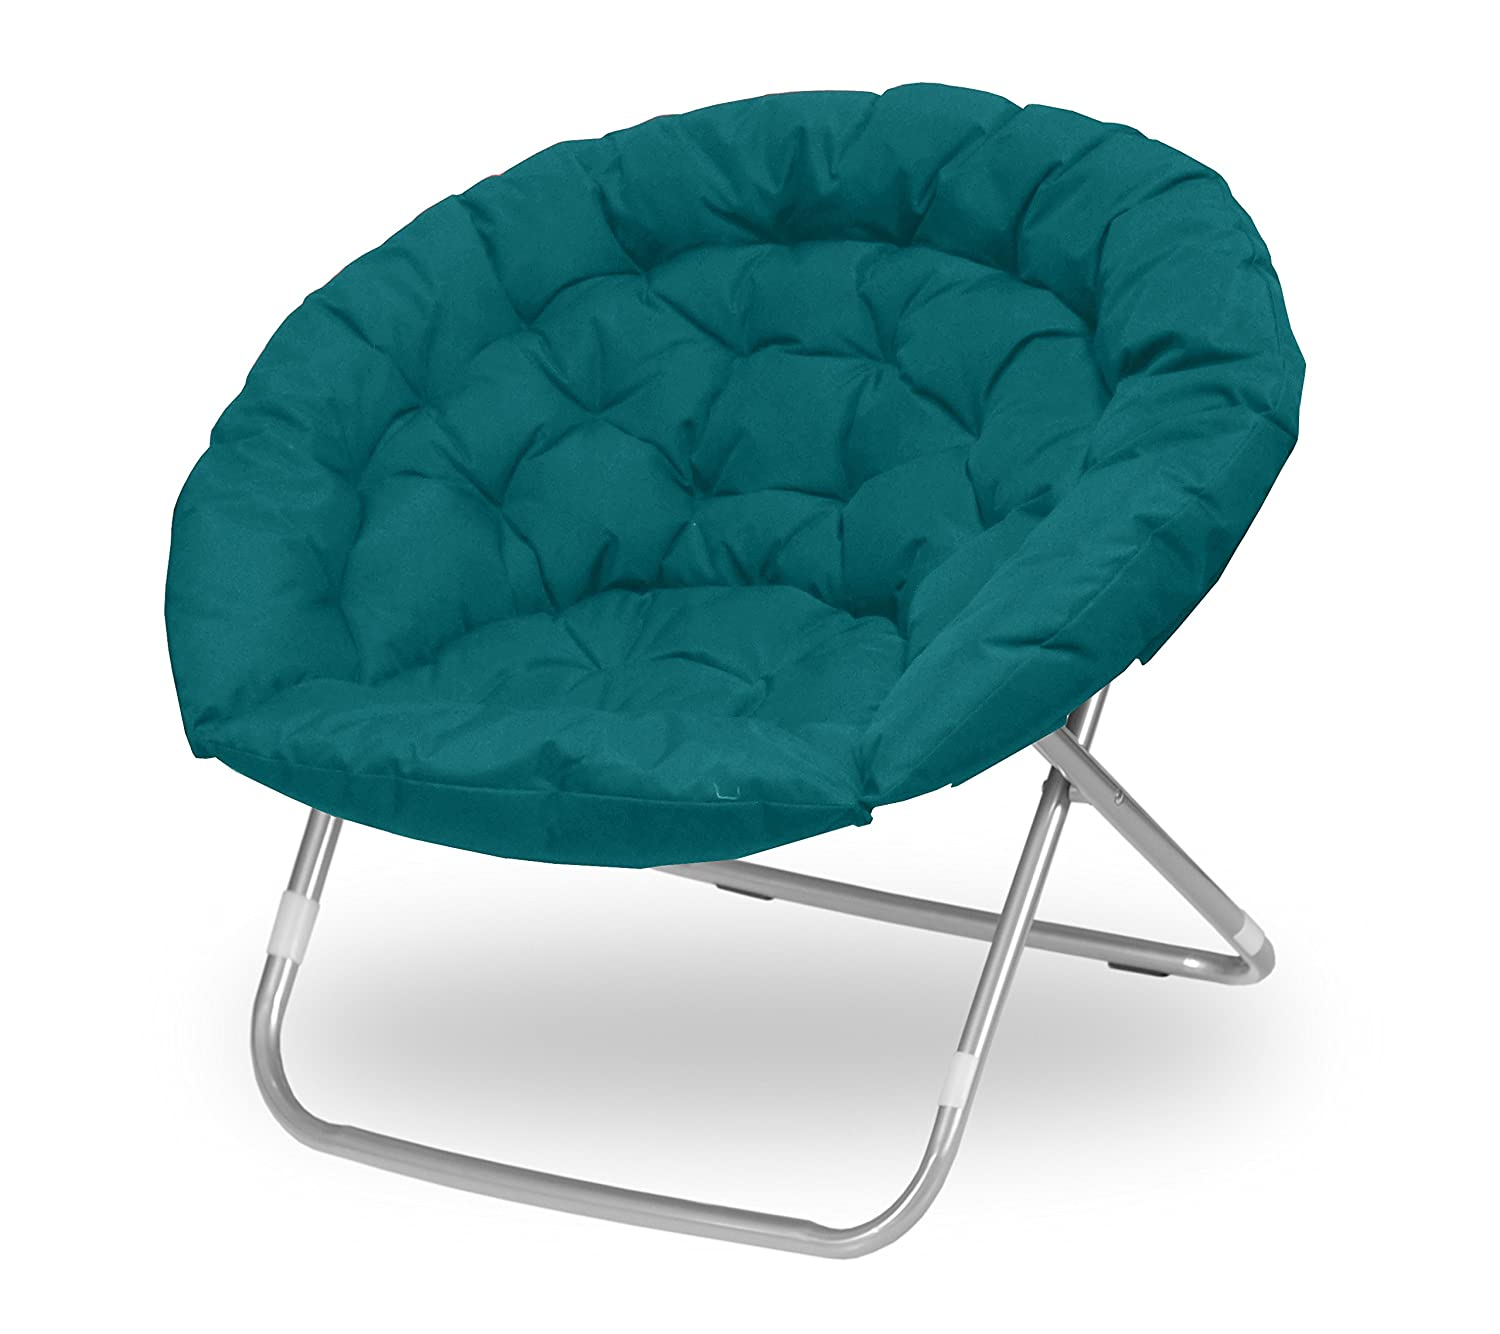 mac at home extra large moon chair with ottoman. mac at home extra large moon chair with ottoman